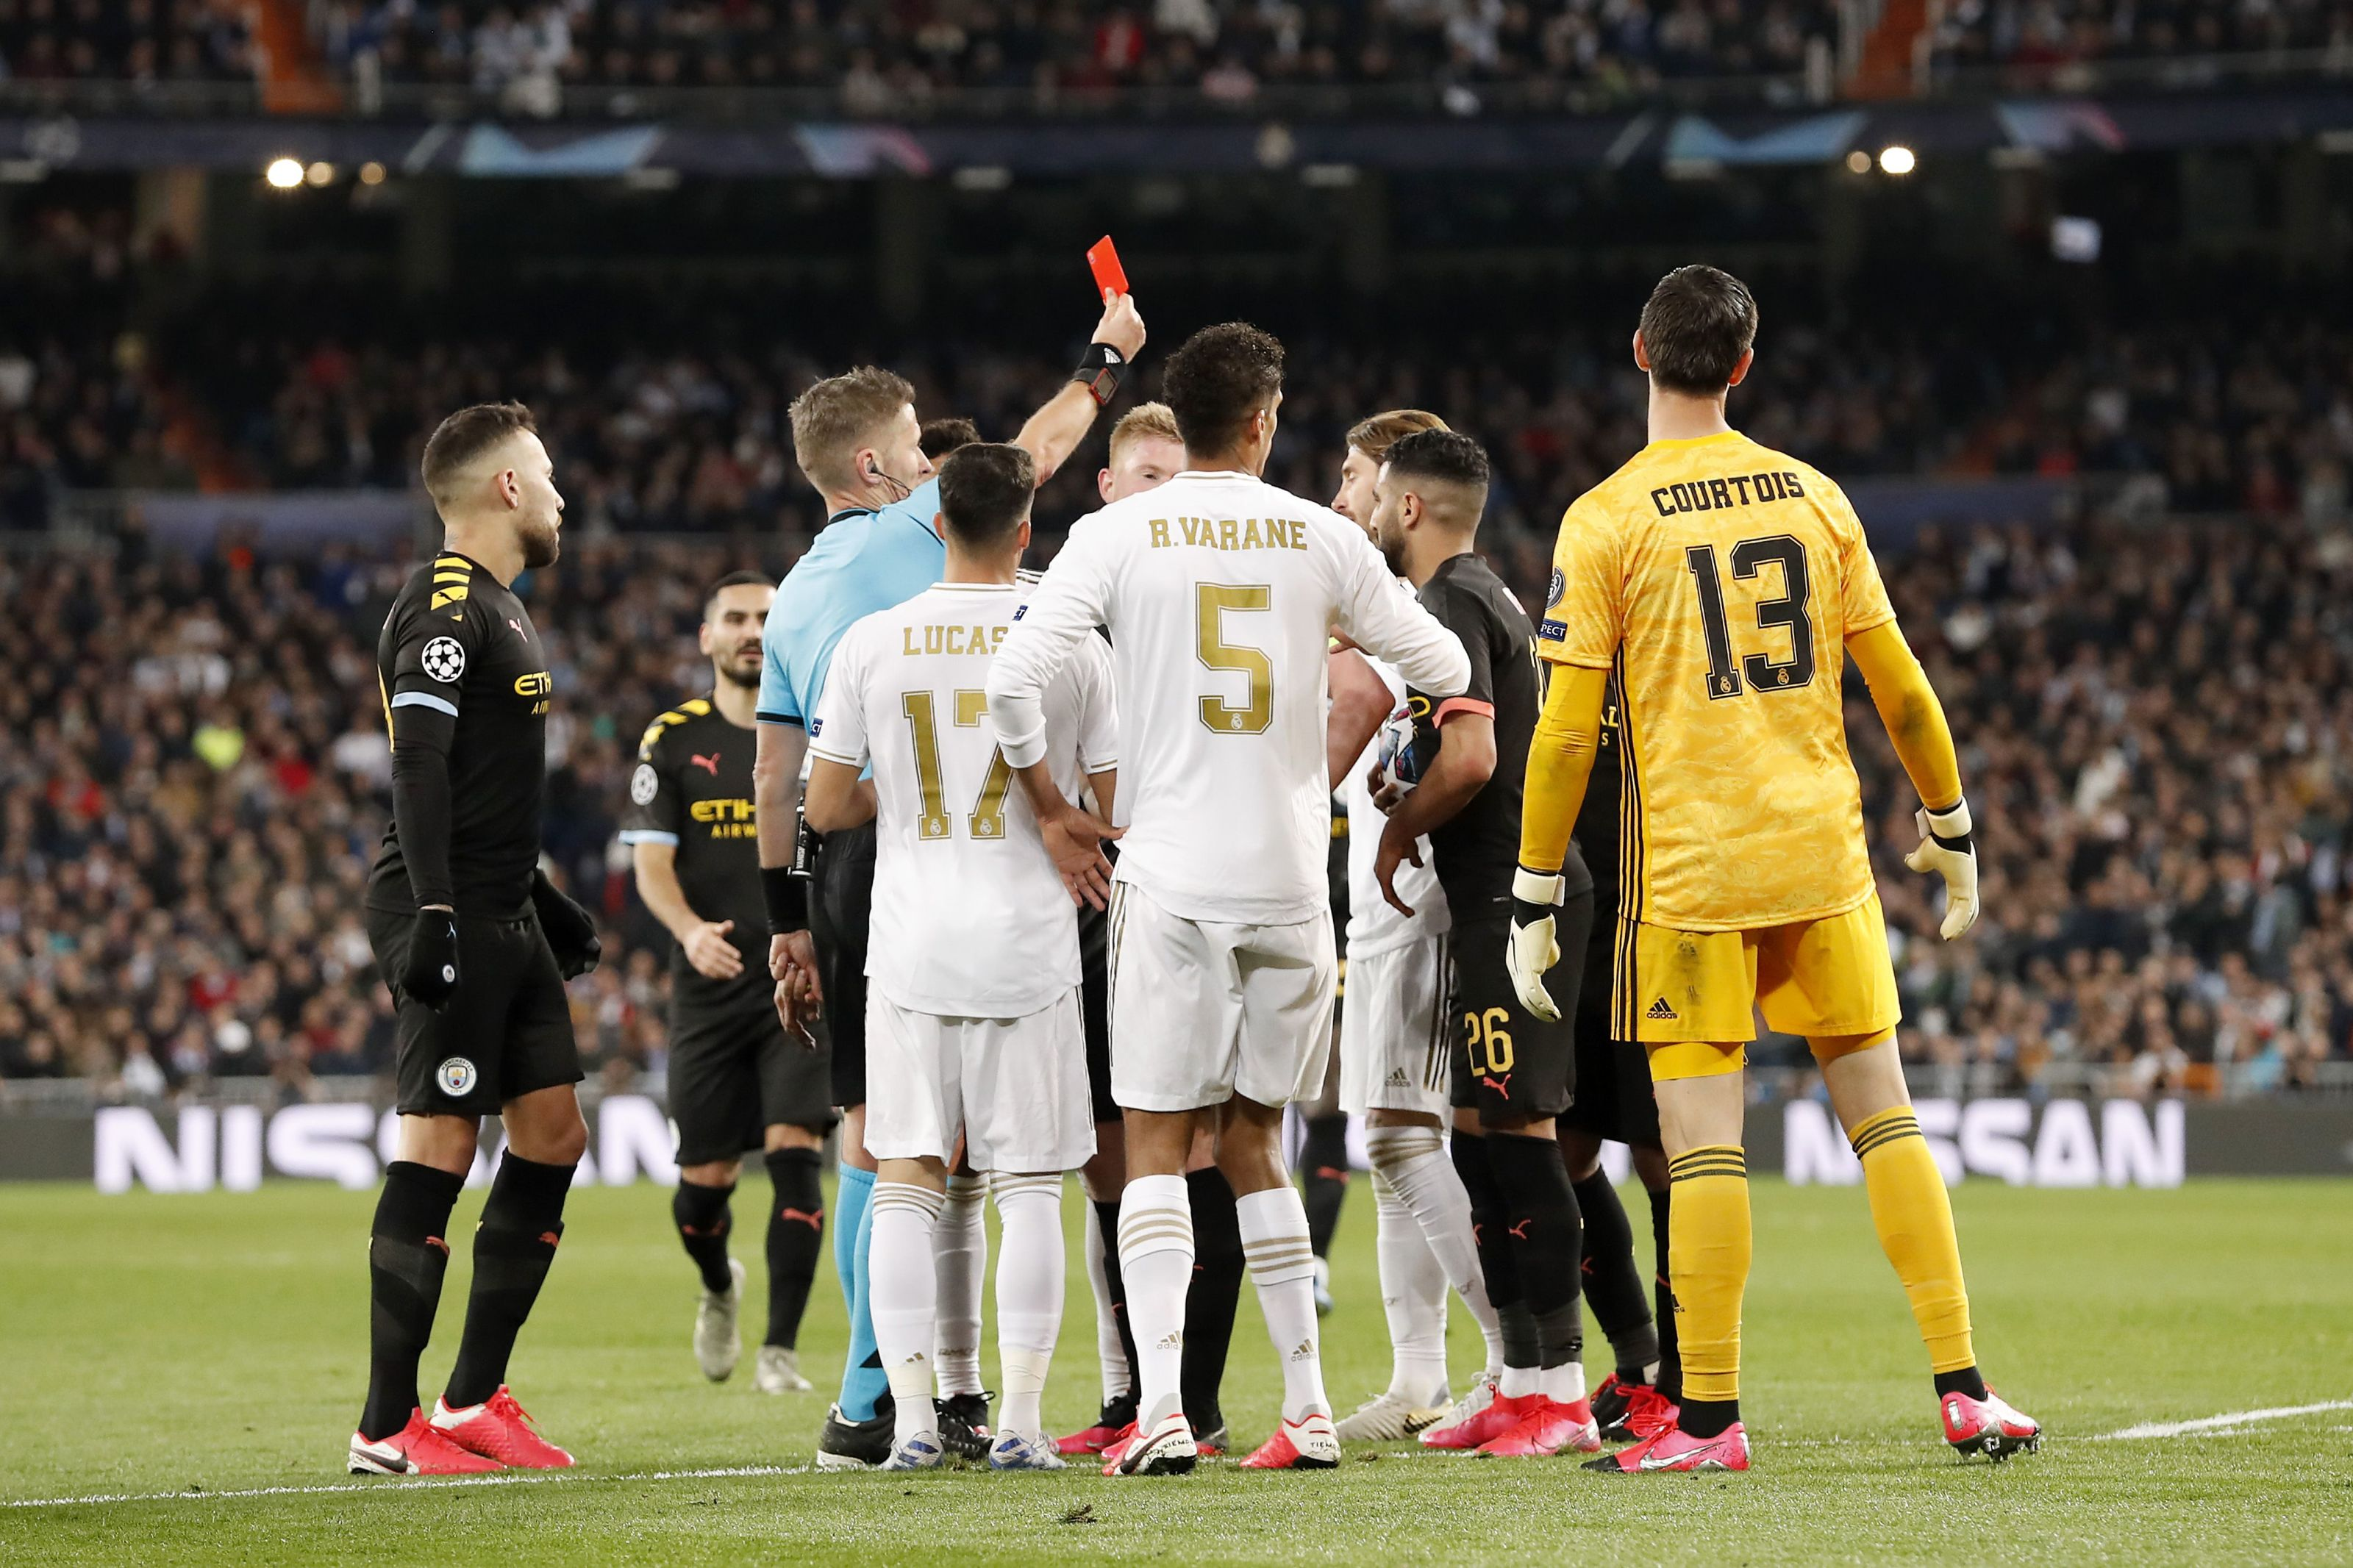 Real Madrid should win Sergio Ramos' red card appeal to UEFA